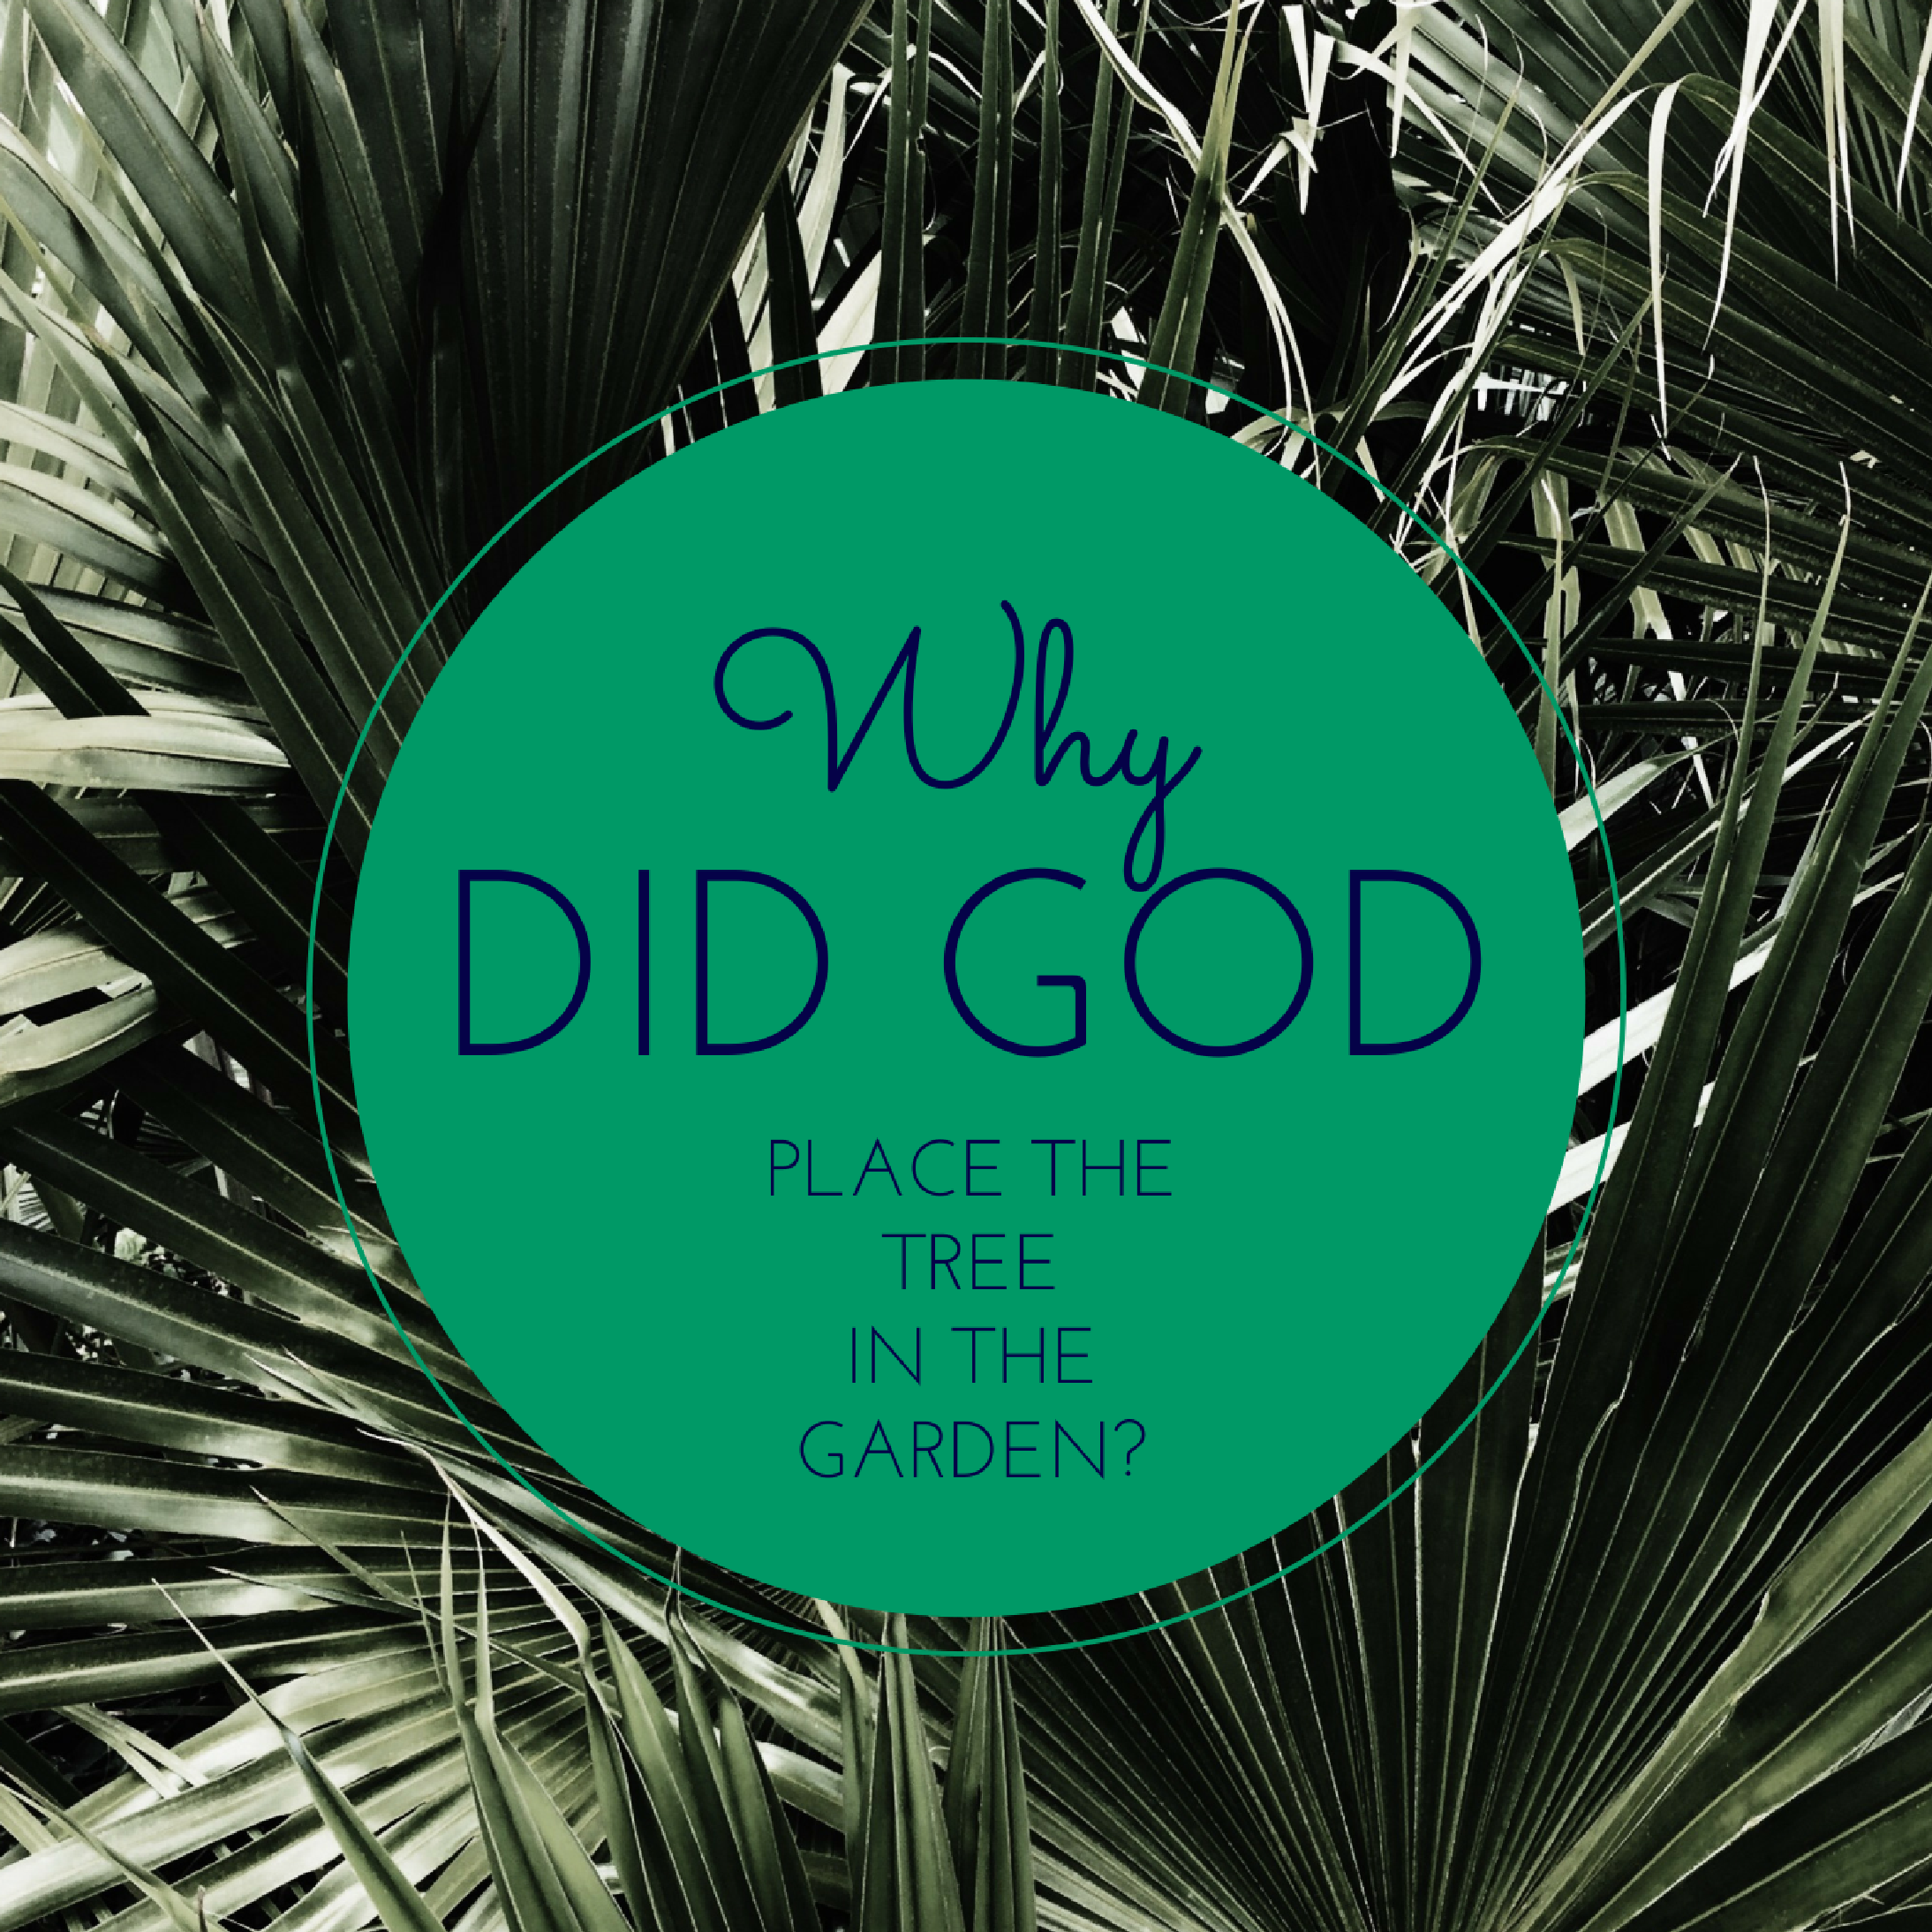 why_did_god_place_the_tree_in_the_garden.png